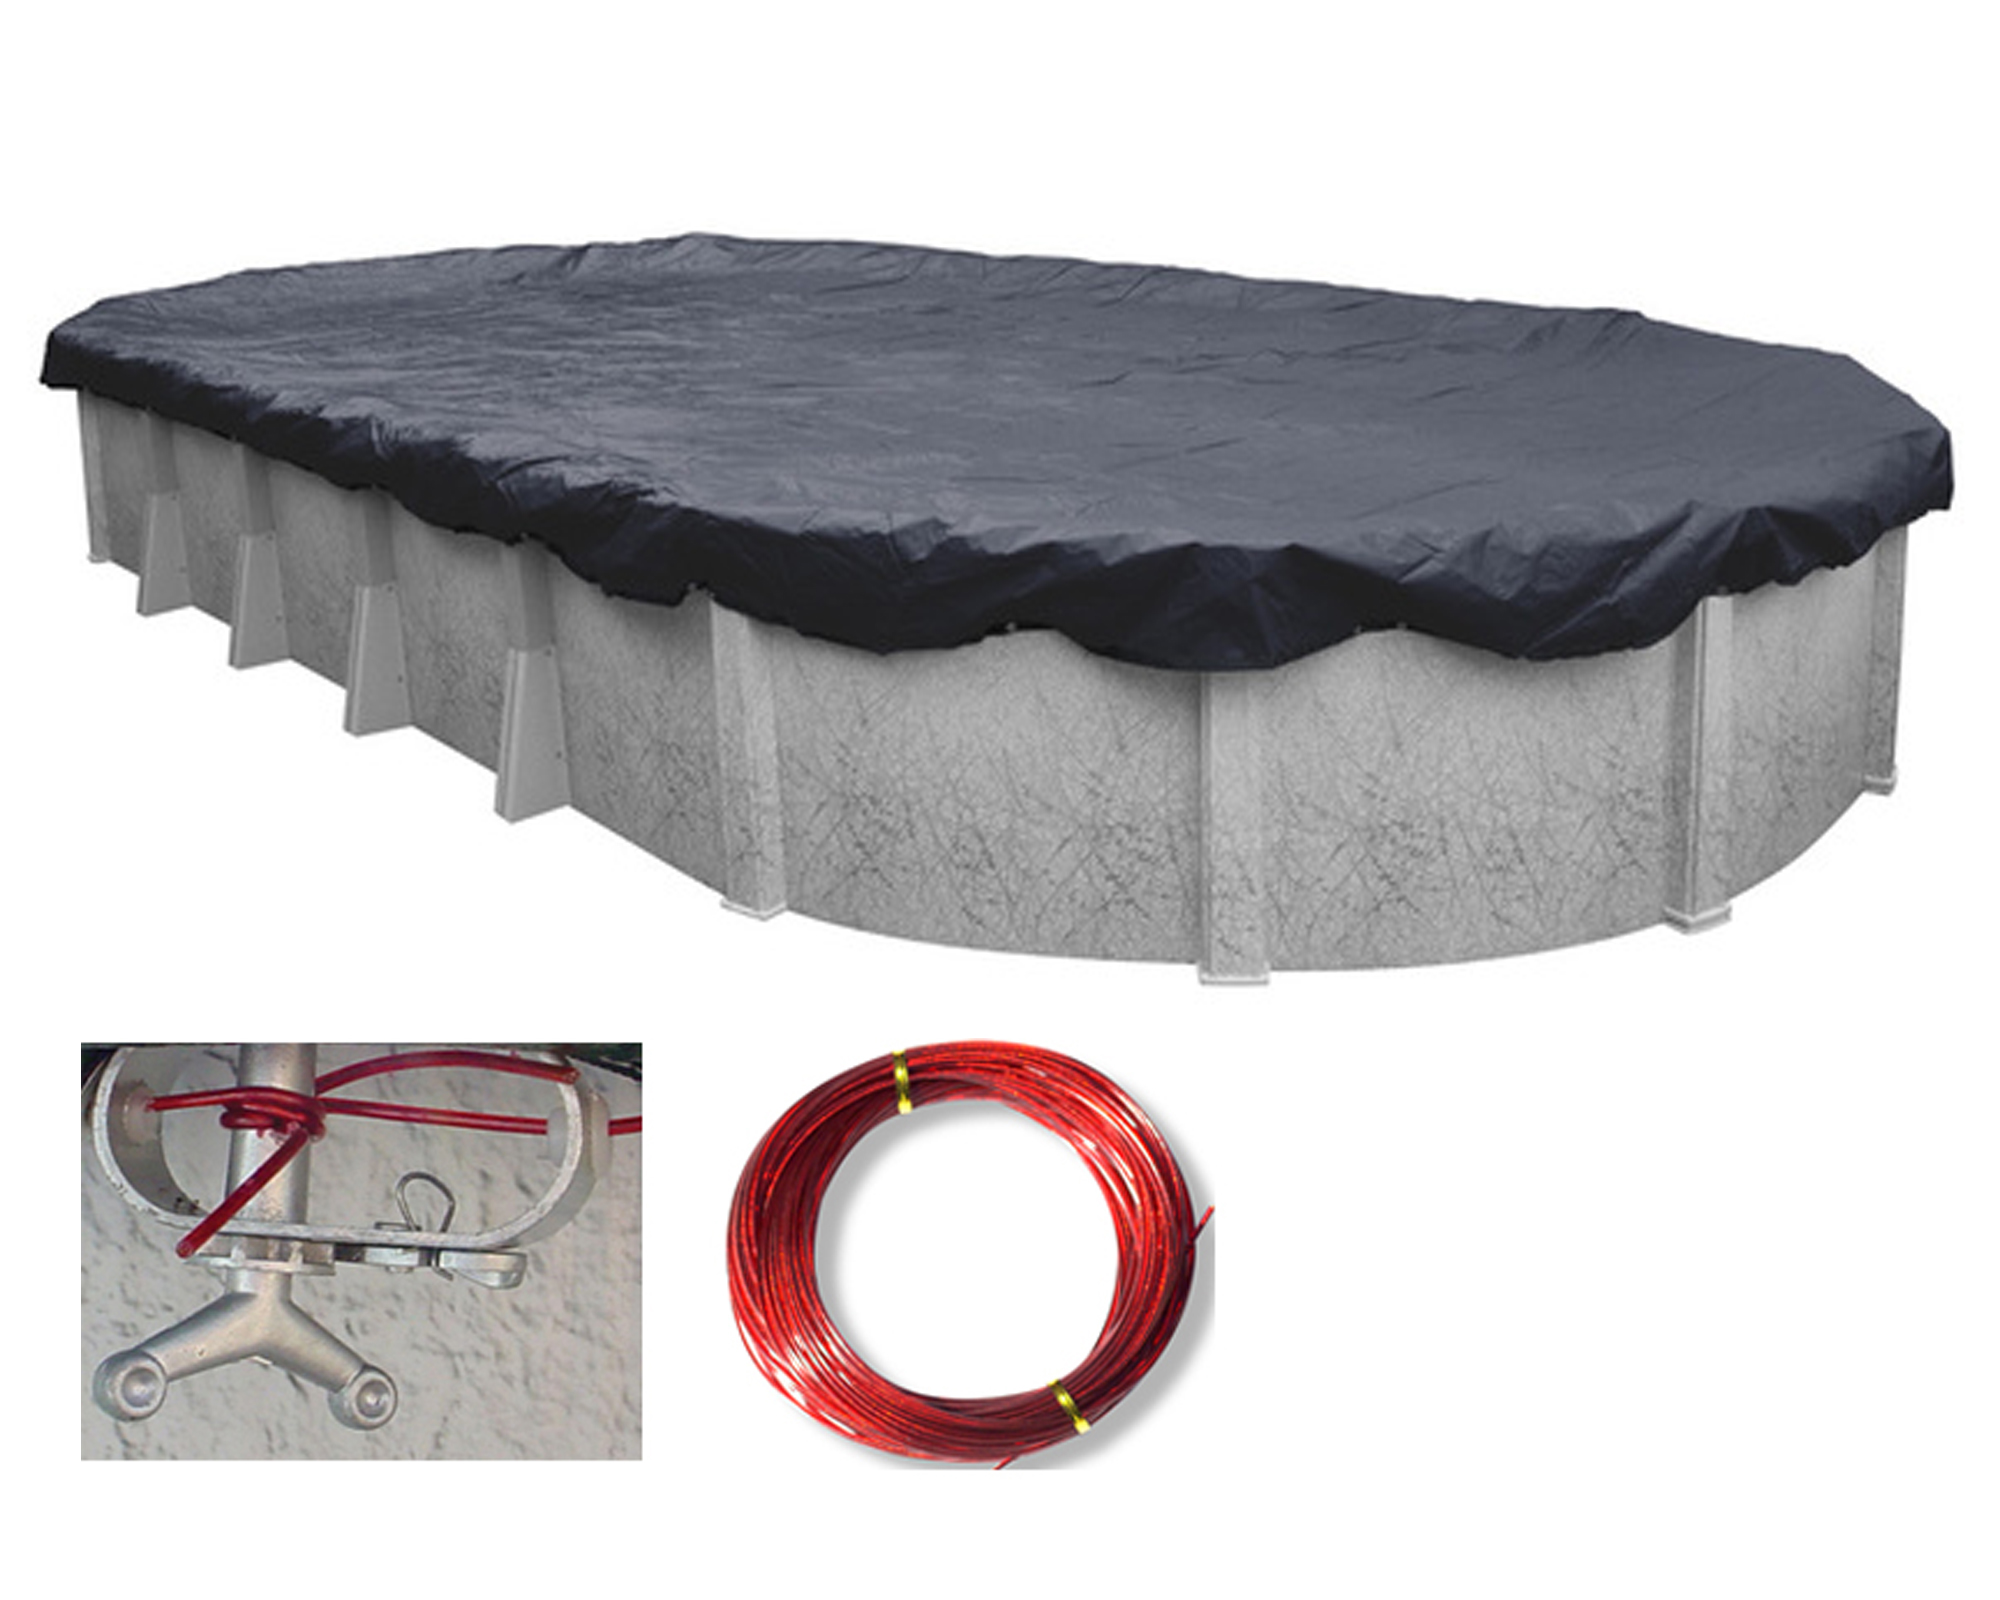 18x36 oval deluxe above ground swimming pool winter cover - Swimming pools covers above ground ...